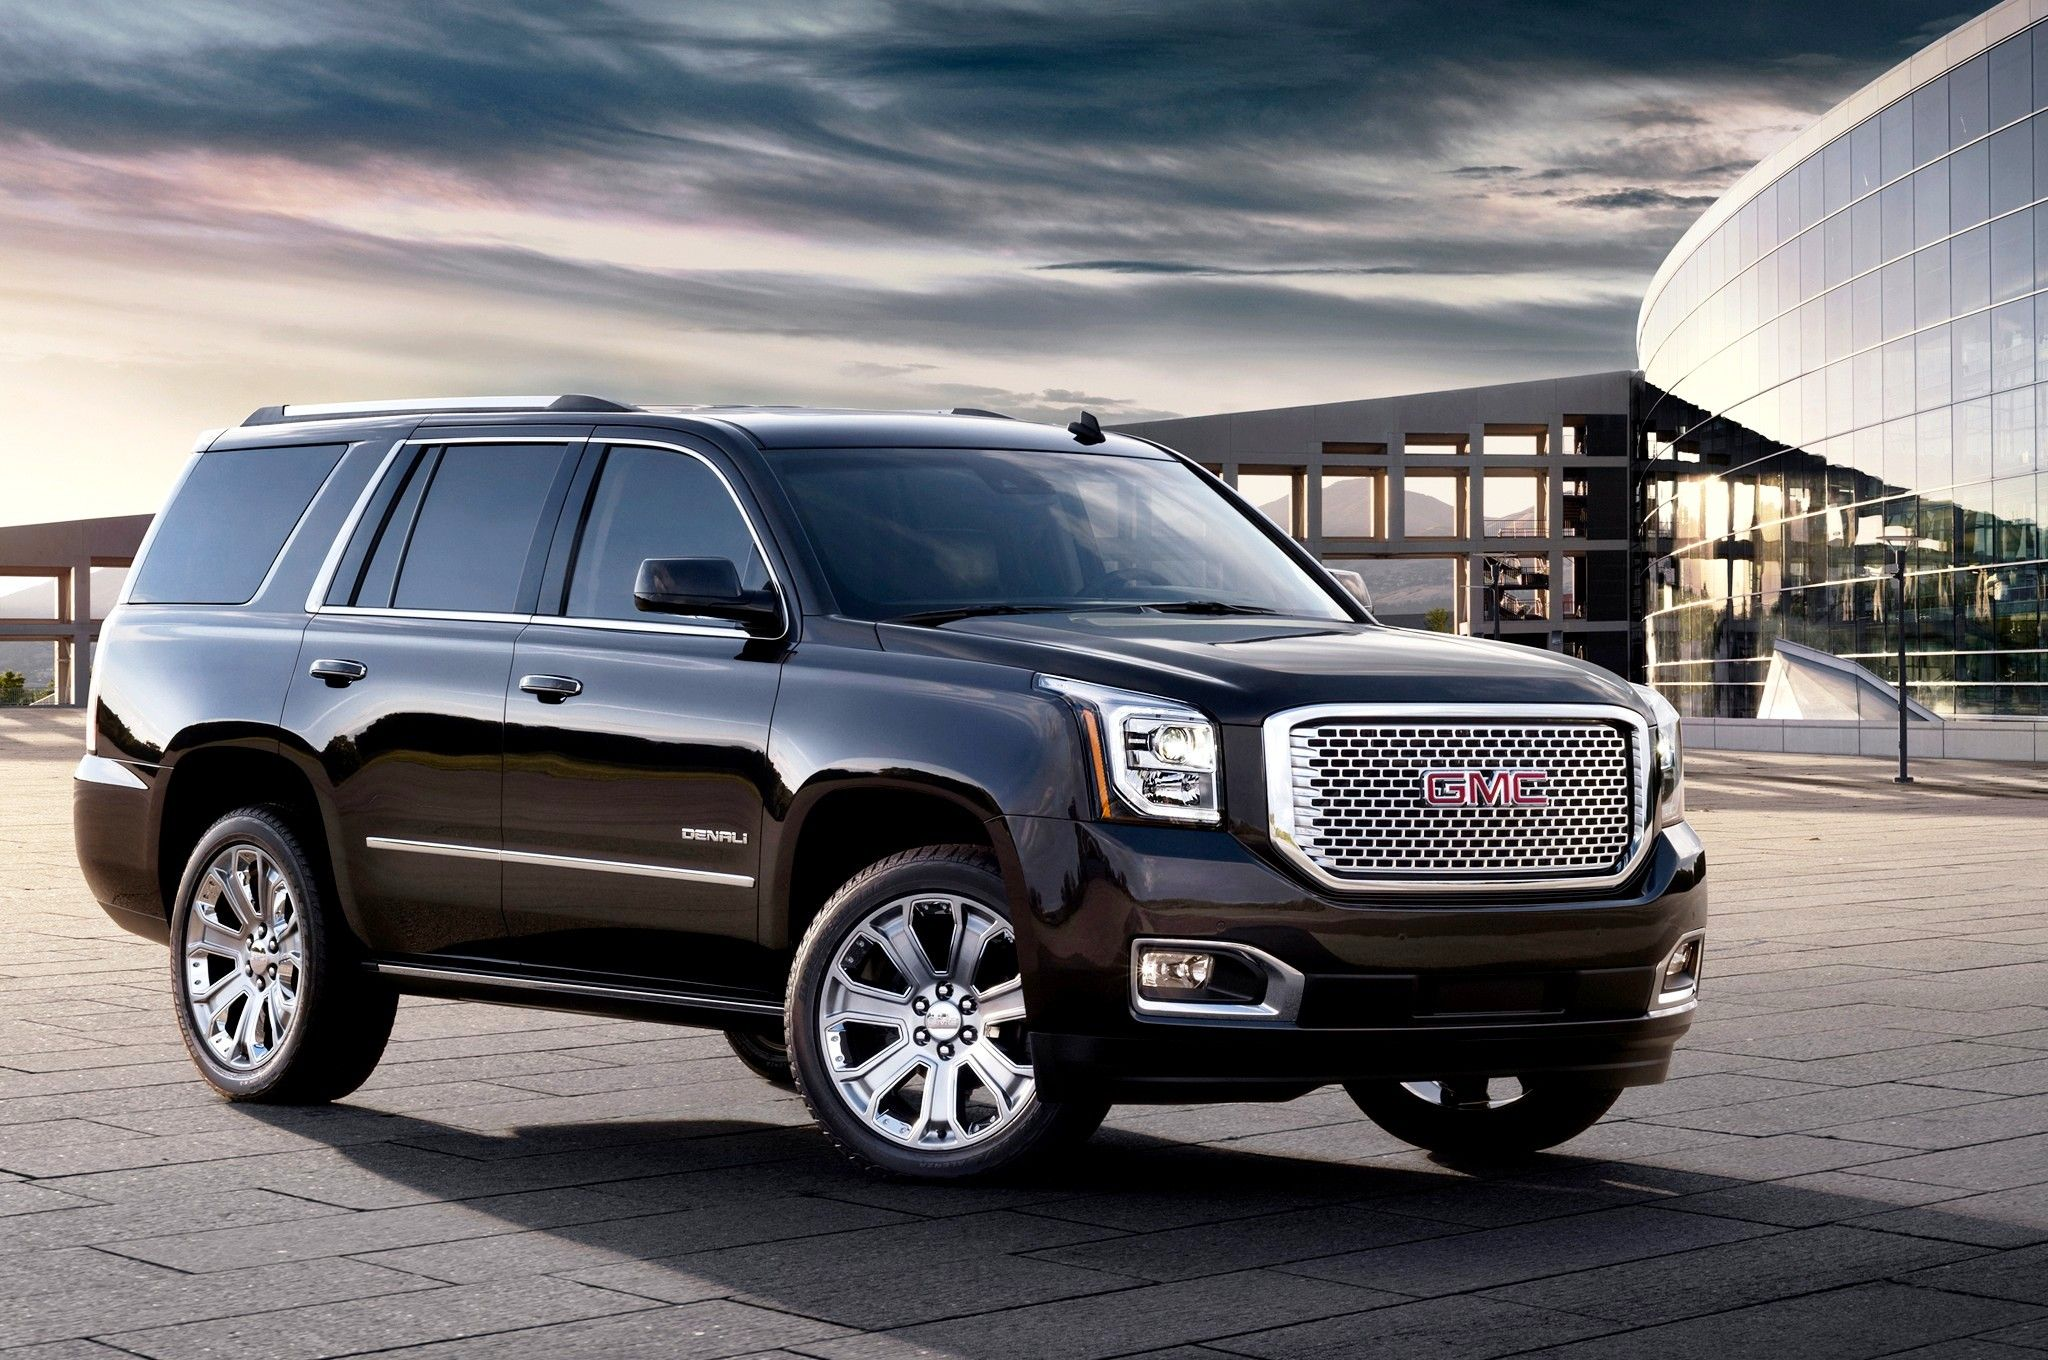 New 2016 Gmc Suv Prices Msrp Specs Reviews Price List And Features